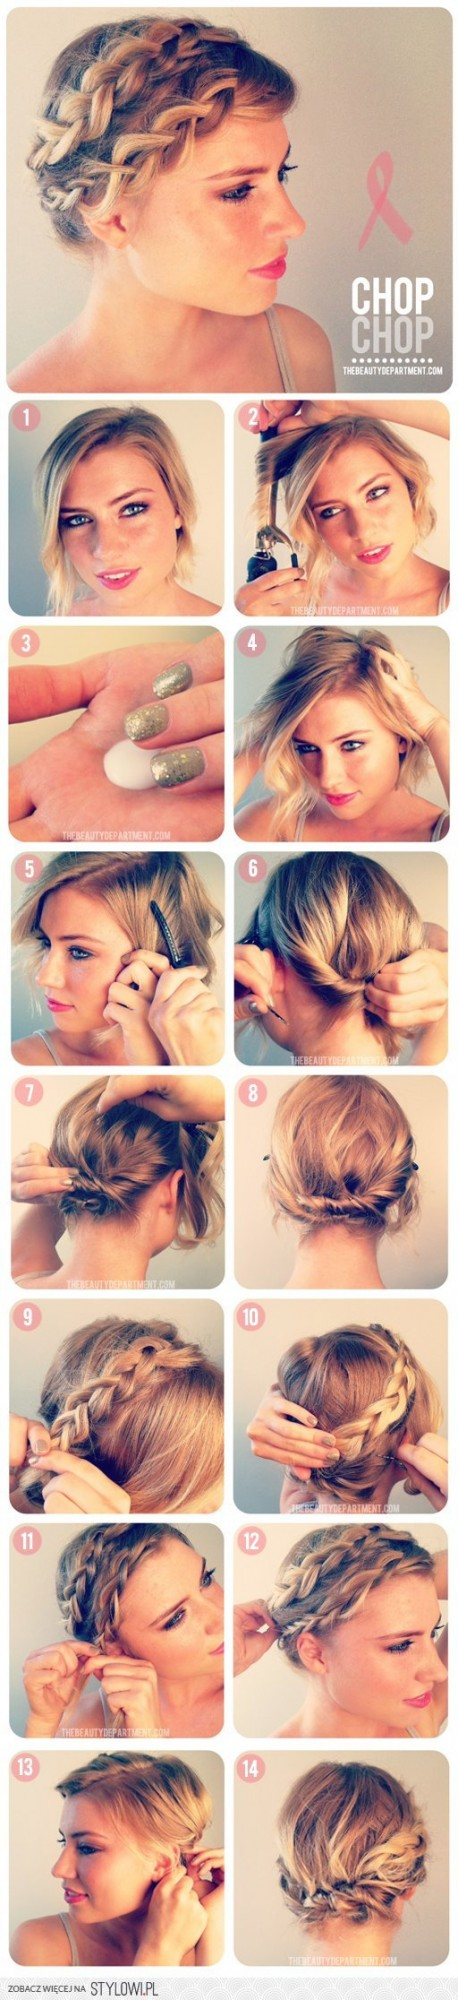 21 Great Short Hairstyle Ideas and Tutorials